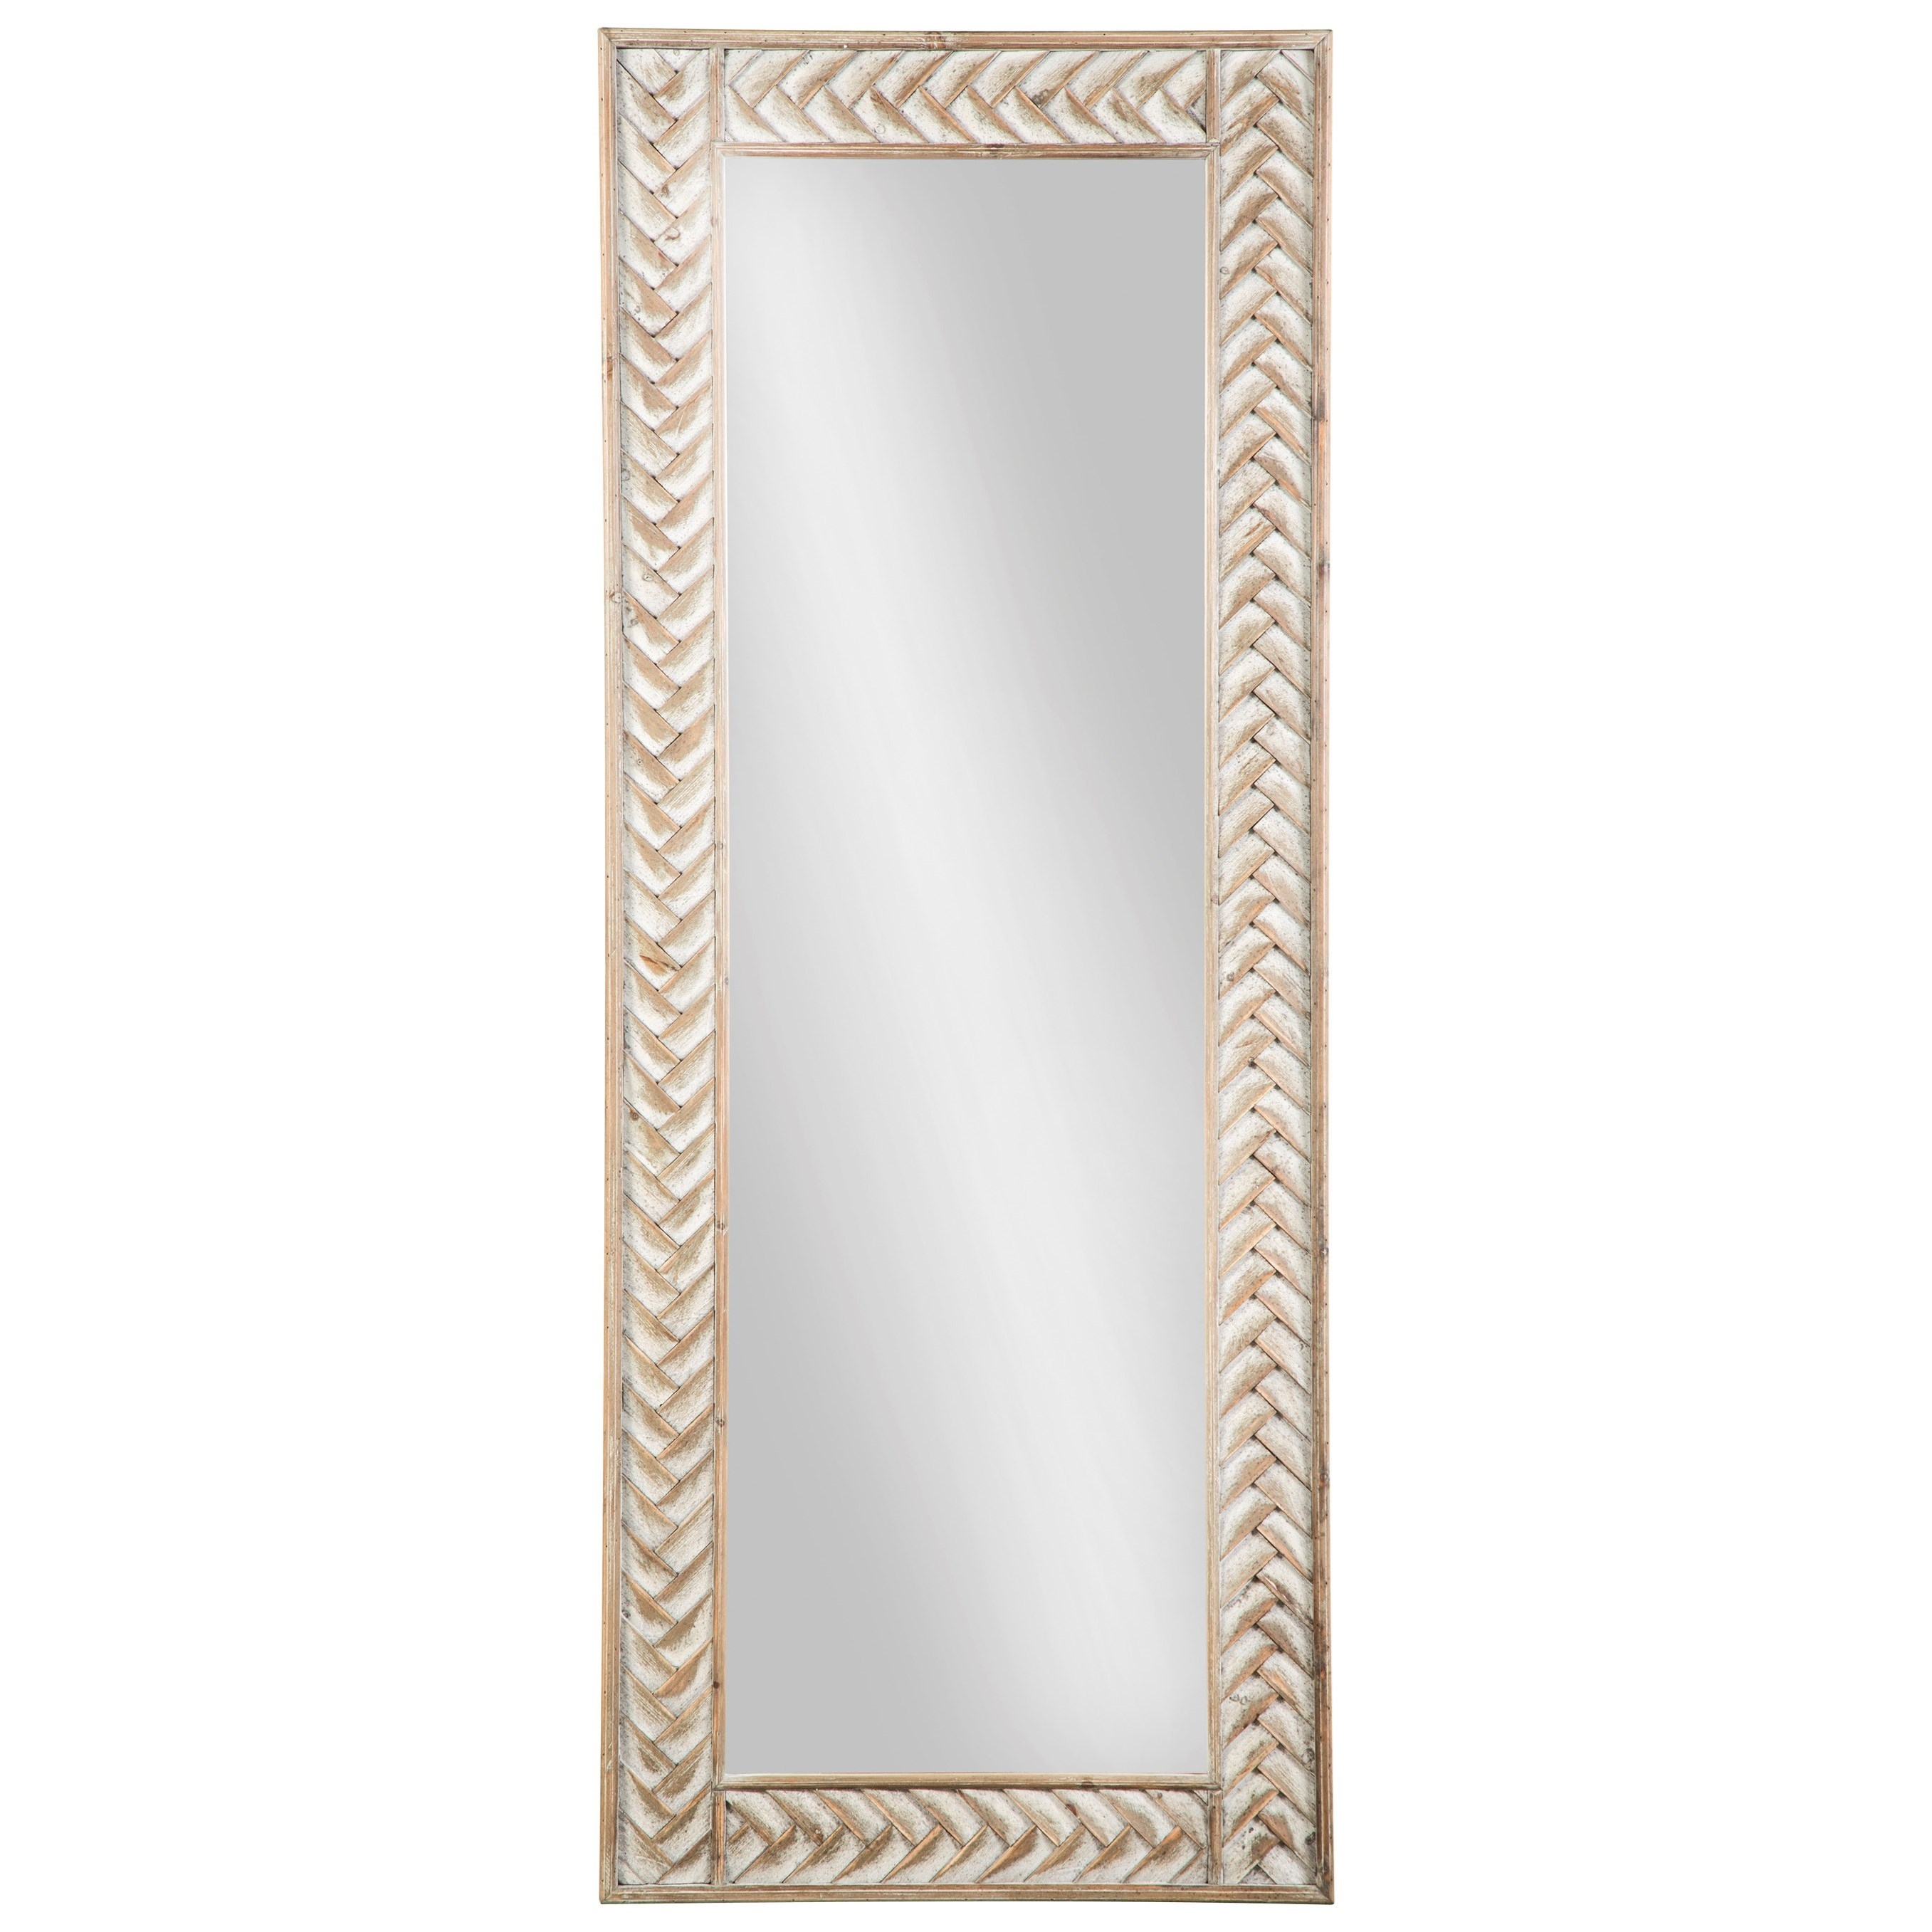 Signature Design by Ashley Accent Mirrors Nash Natural Accent Mirror - Item Number: A8010100